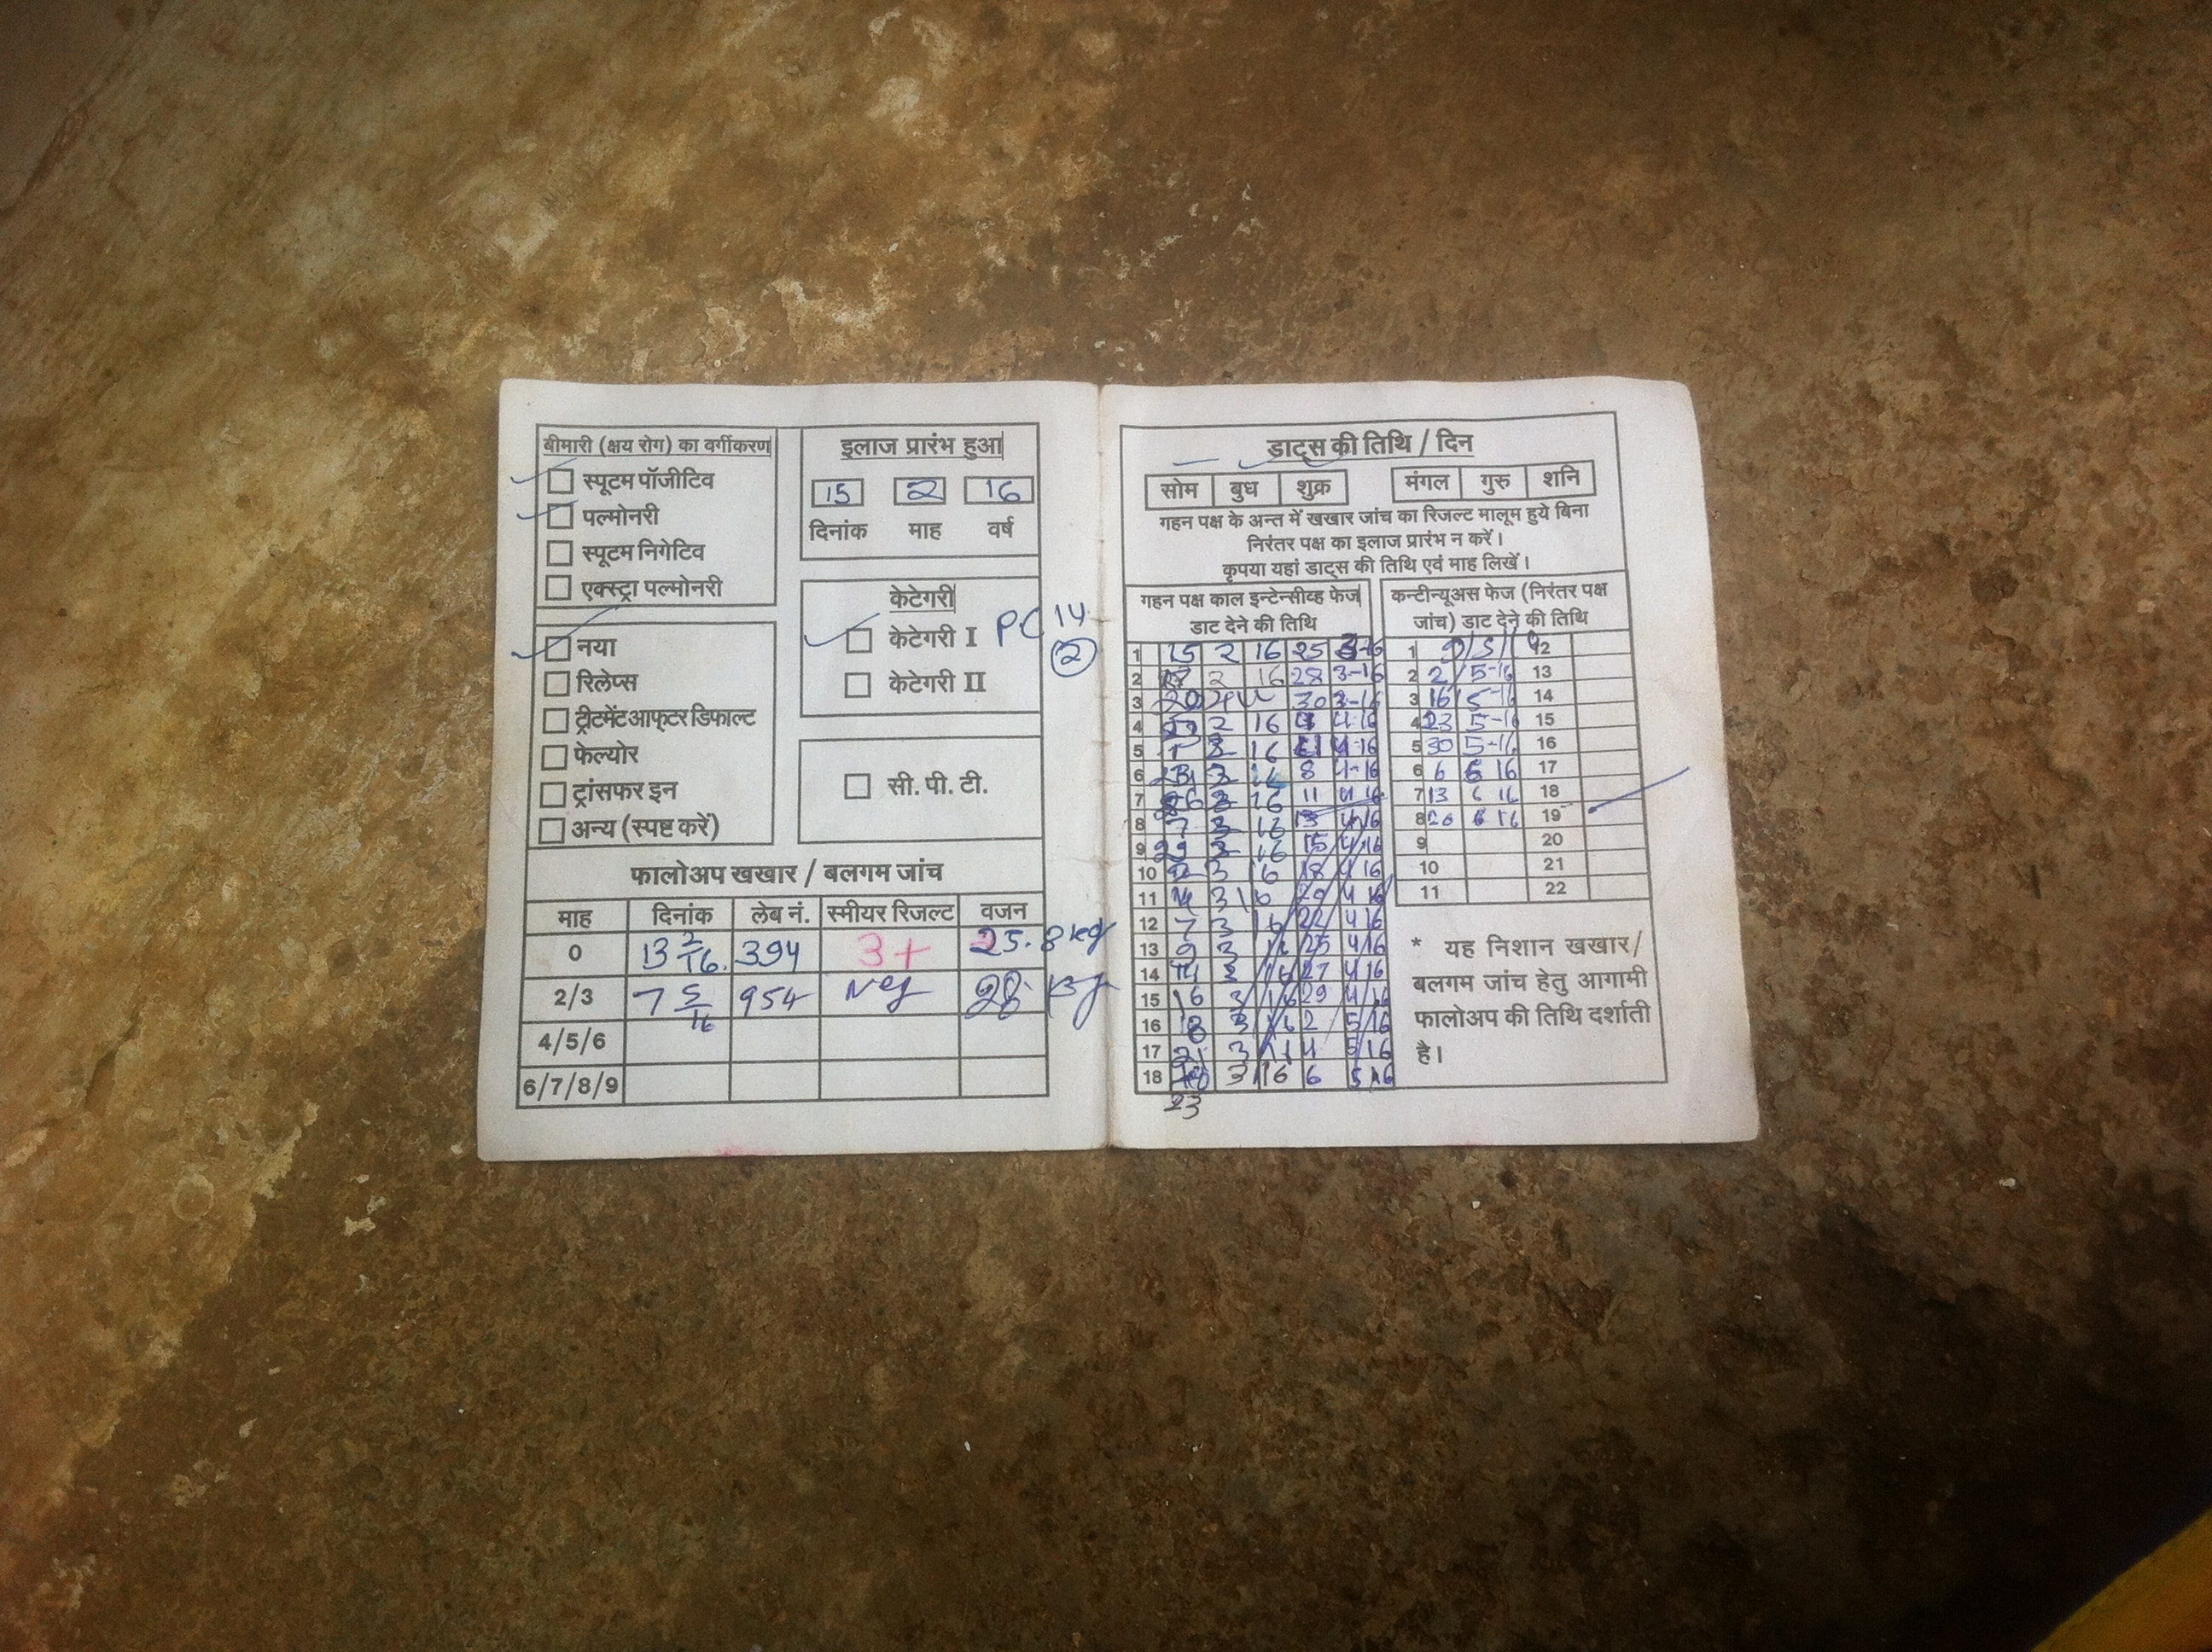 Rajendra's card which records his treatment.